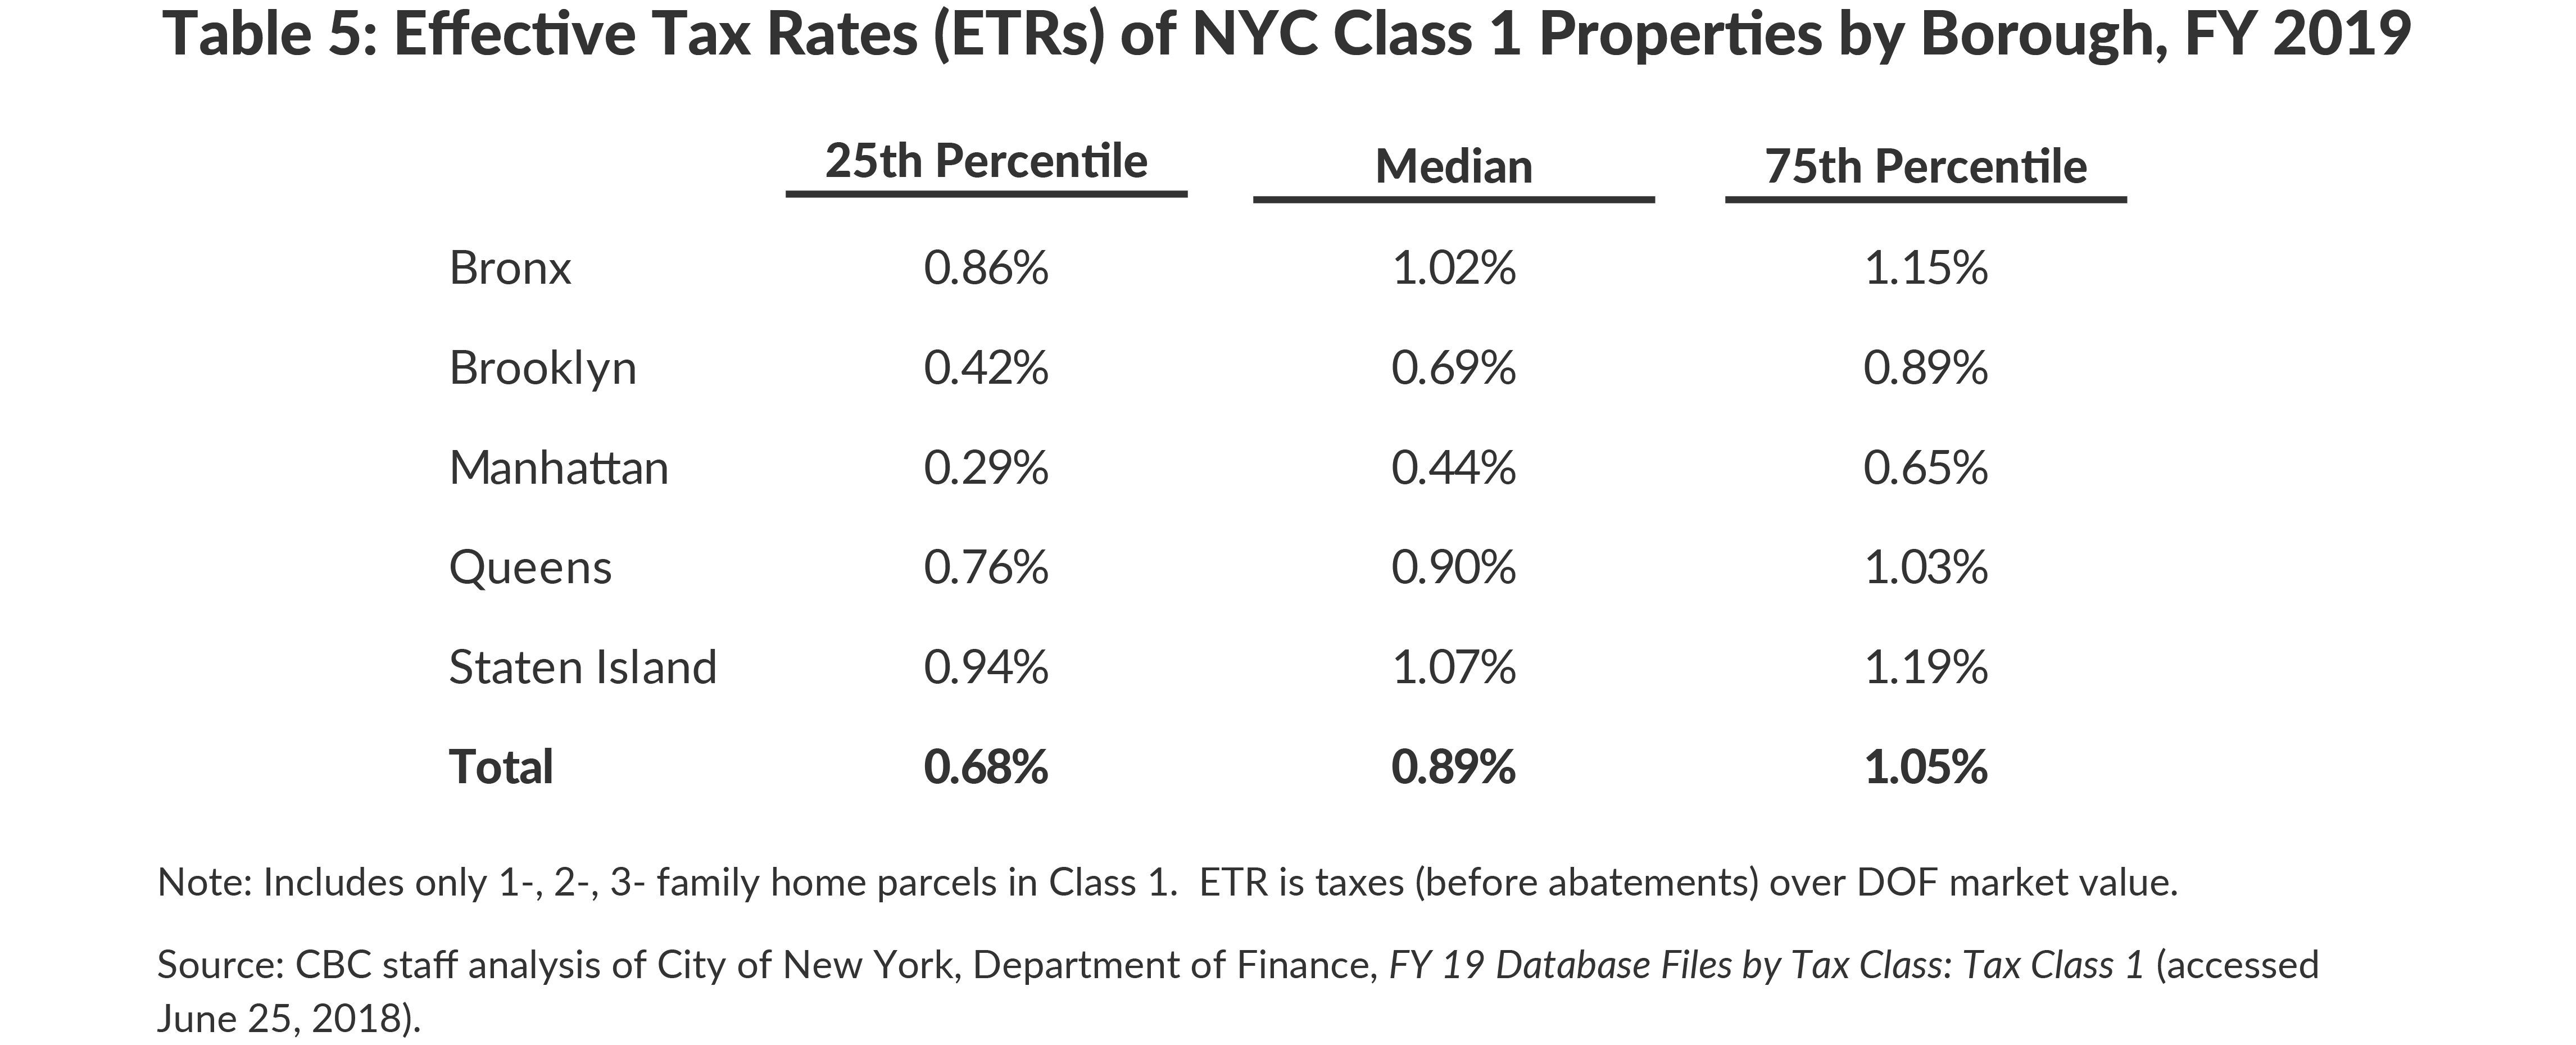 Table 5: Effective Tax Rates (ETRs) of NYC Class 1 Properties by Borough, FY 2019